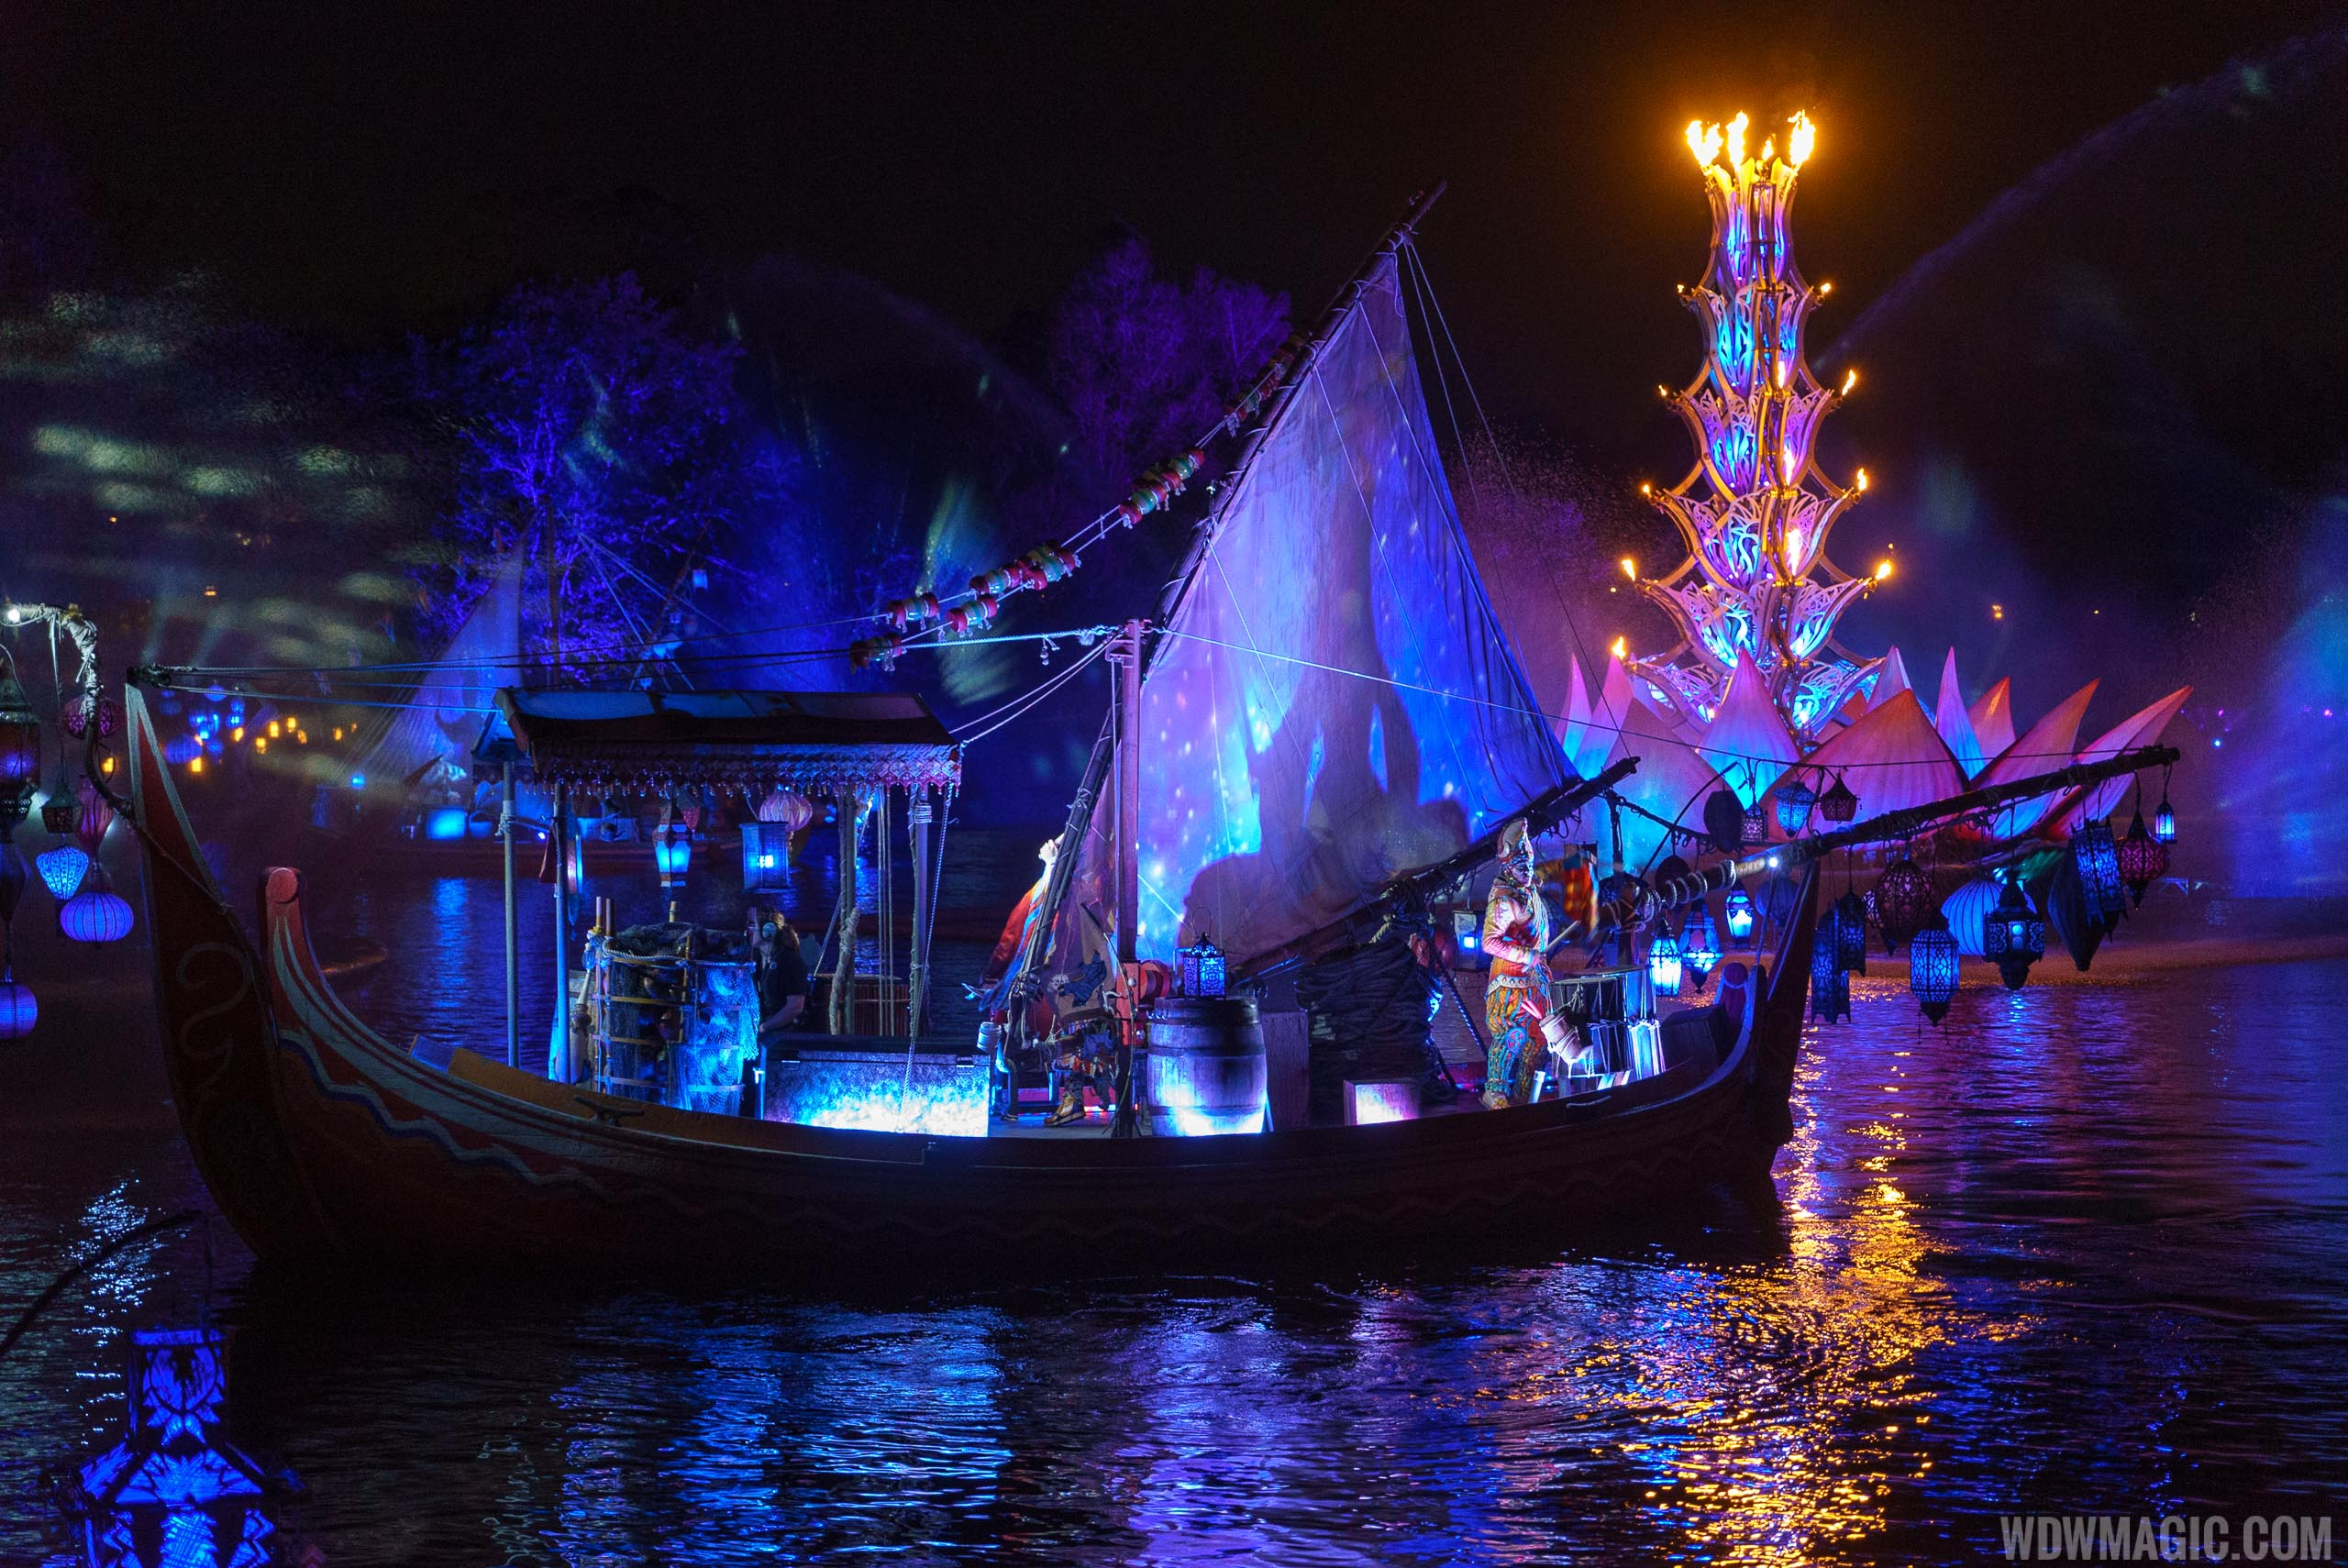 Rivers of Light is one of the new attractions at Walt Disney World